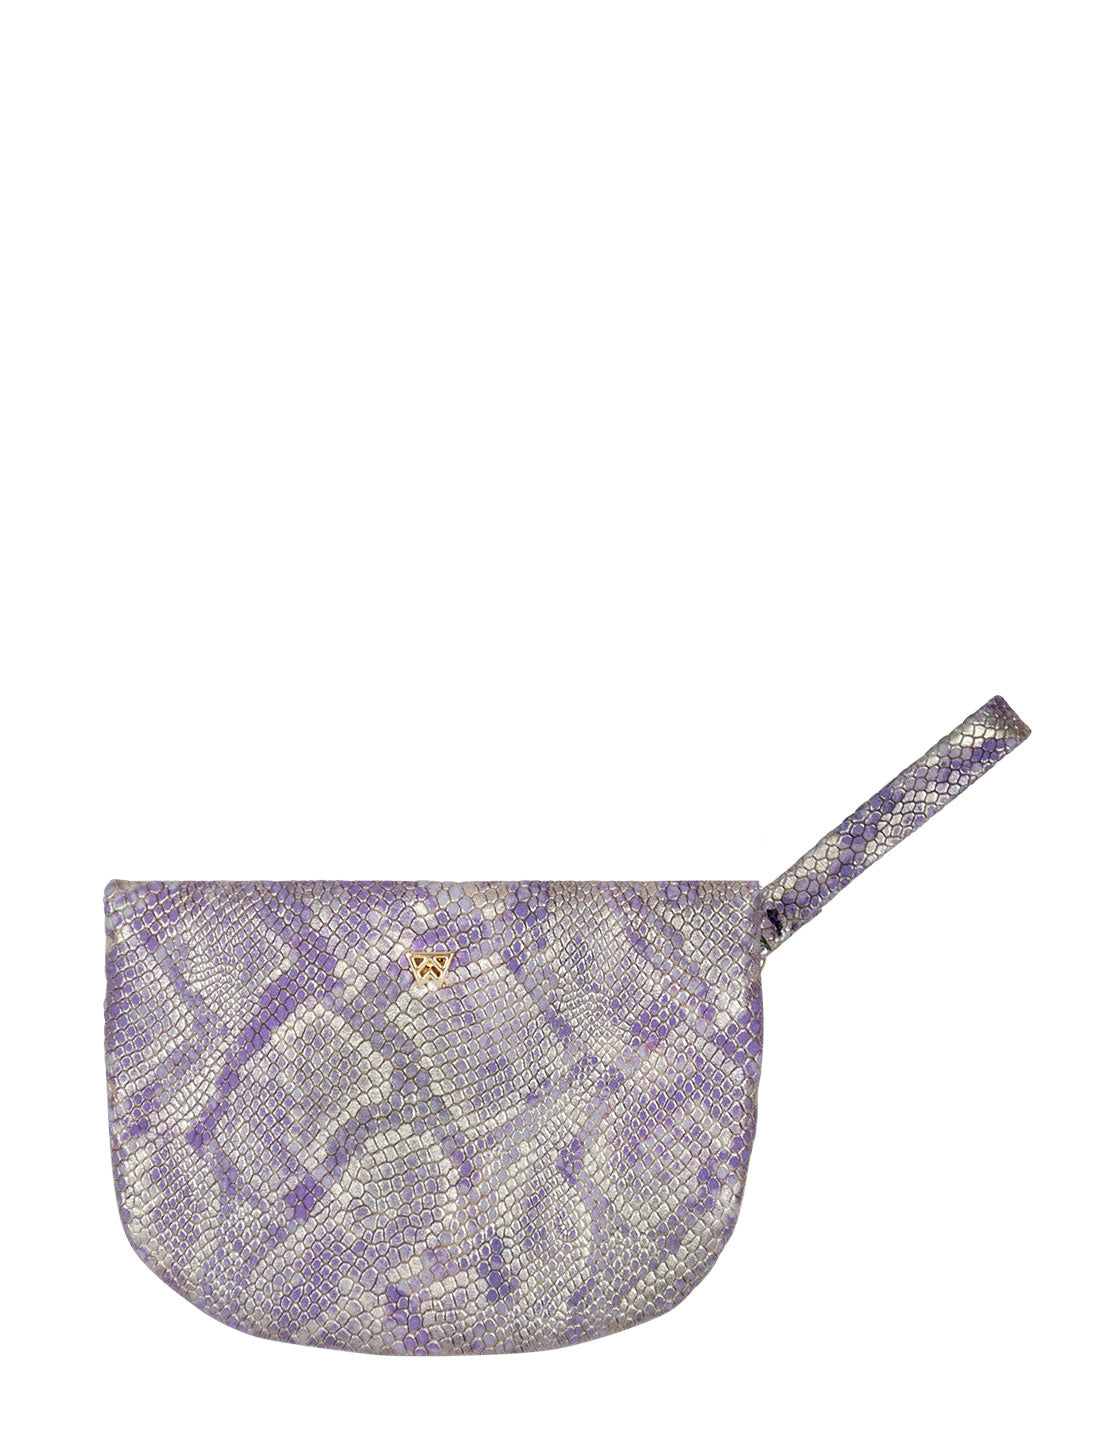 MVP Pouch in Light Purple Python